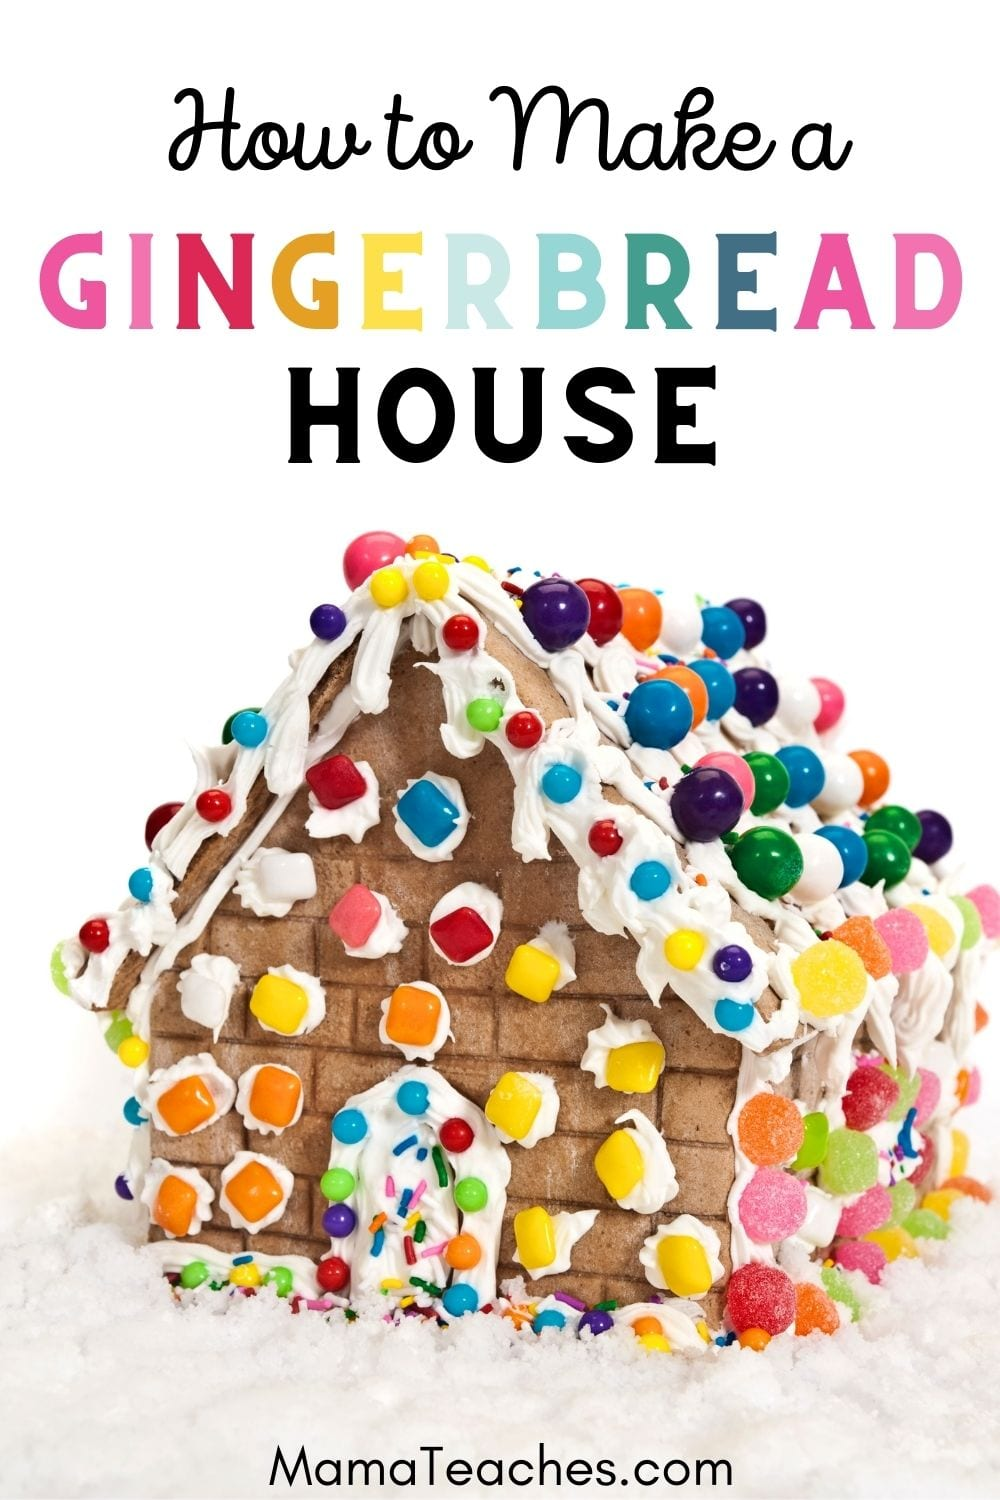 How to Make a Gingerbread House Christmas DIY